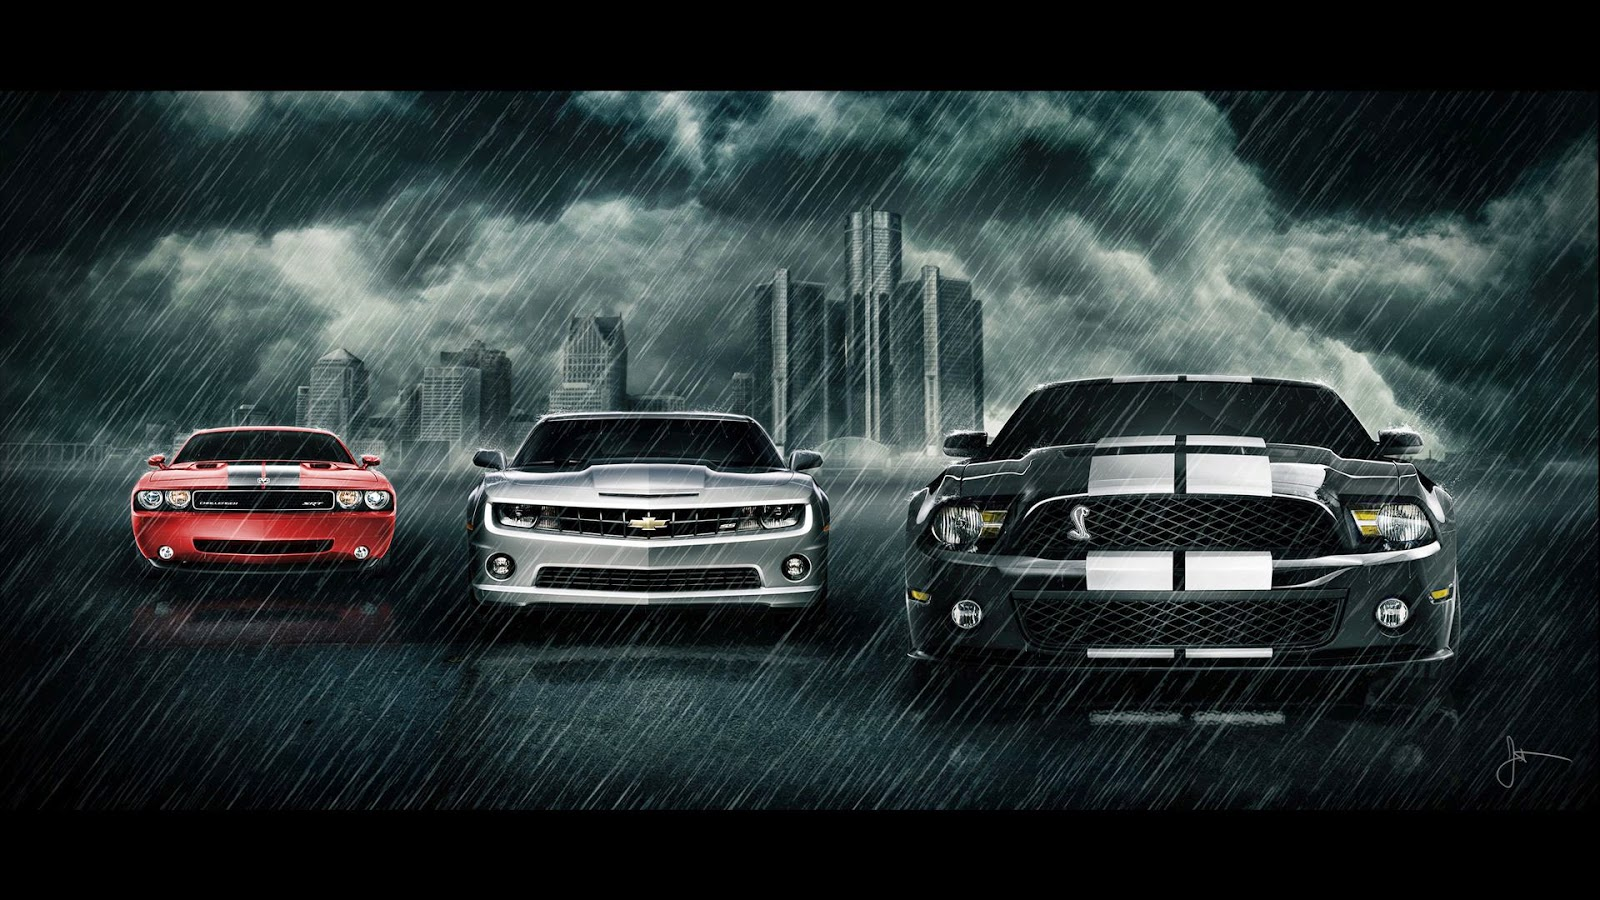 Cars Hd Wallpapers Gallery 1 Wallpaper 3 20 Hd Wallpapers Download